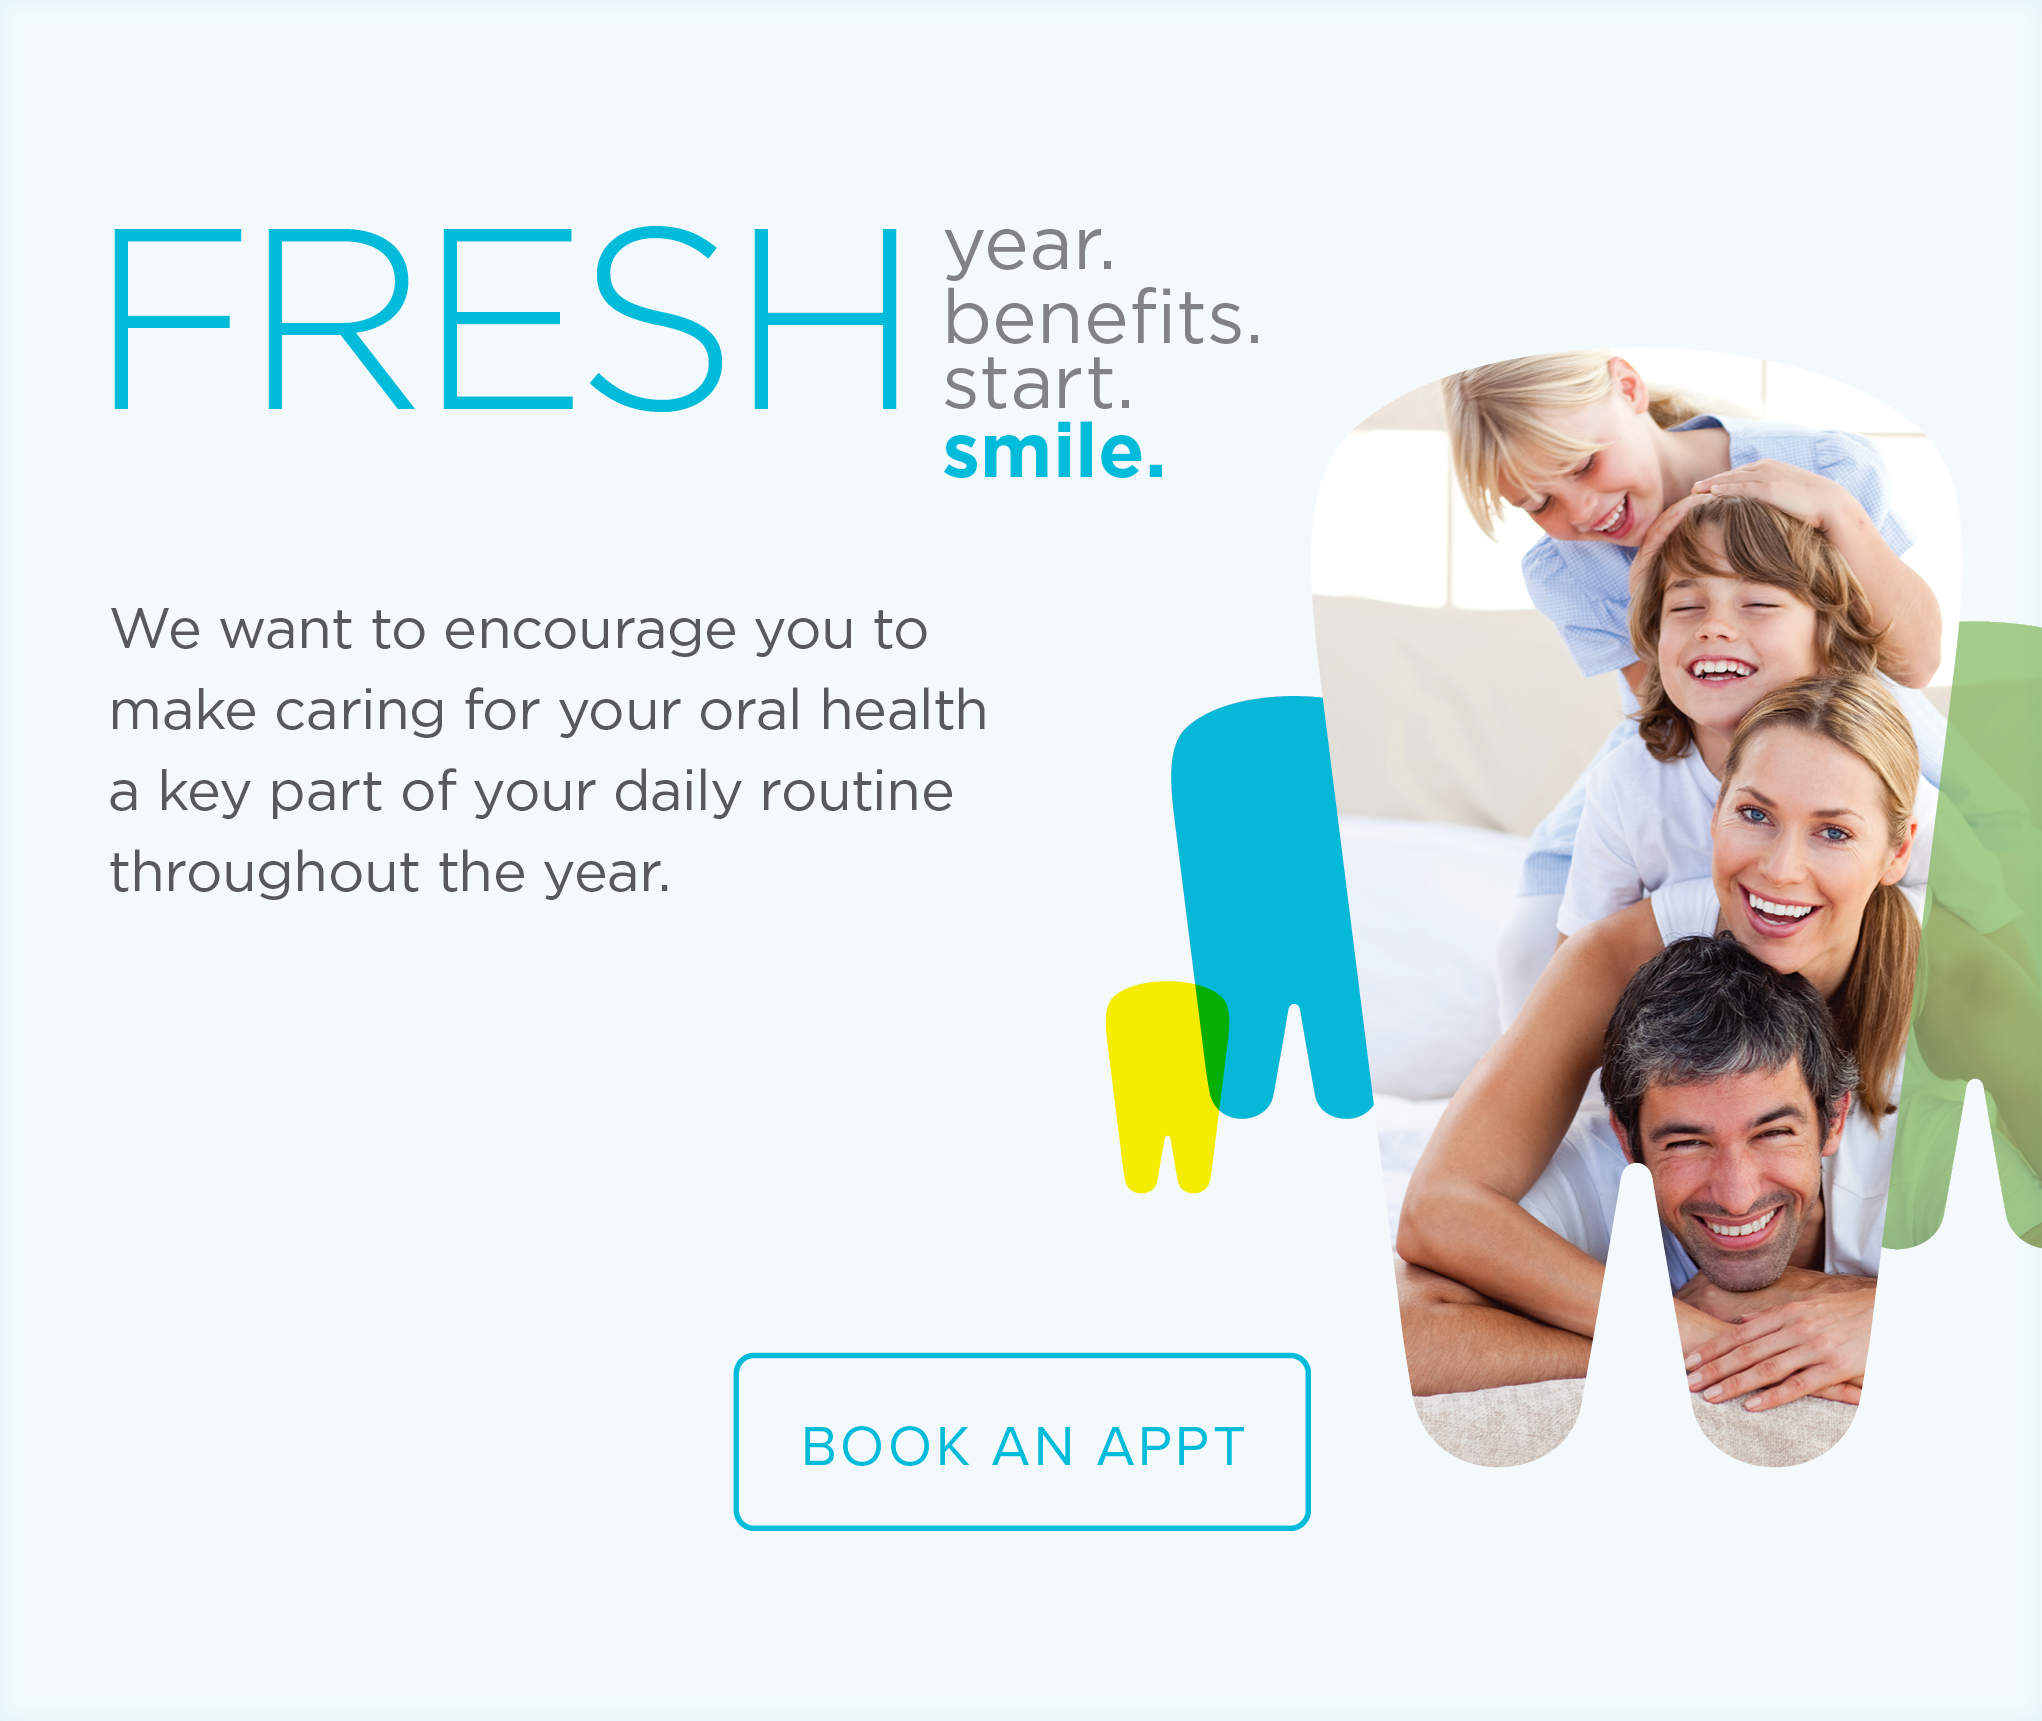 River Lakes Dental Group and Orthodontics - Make the Most of Your Benefits